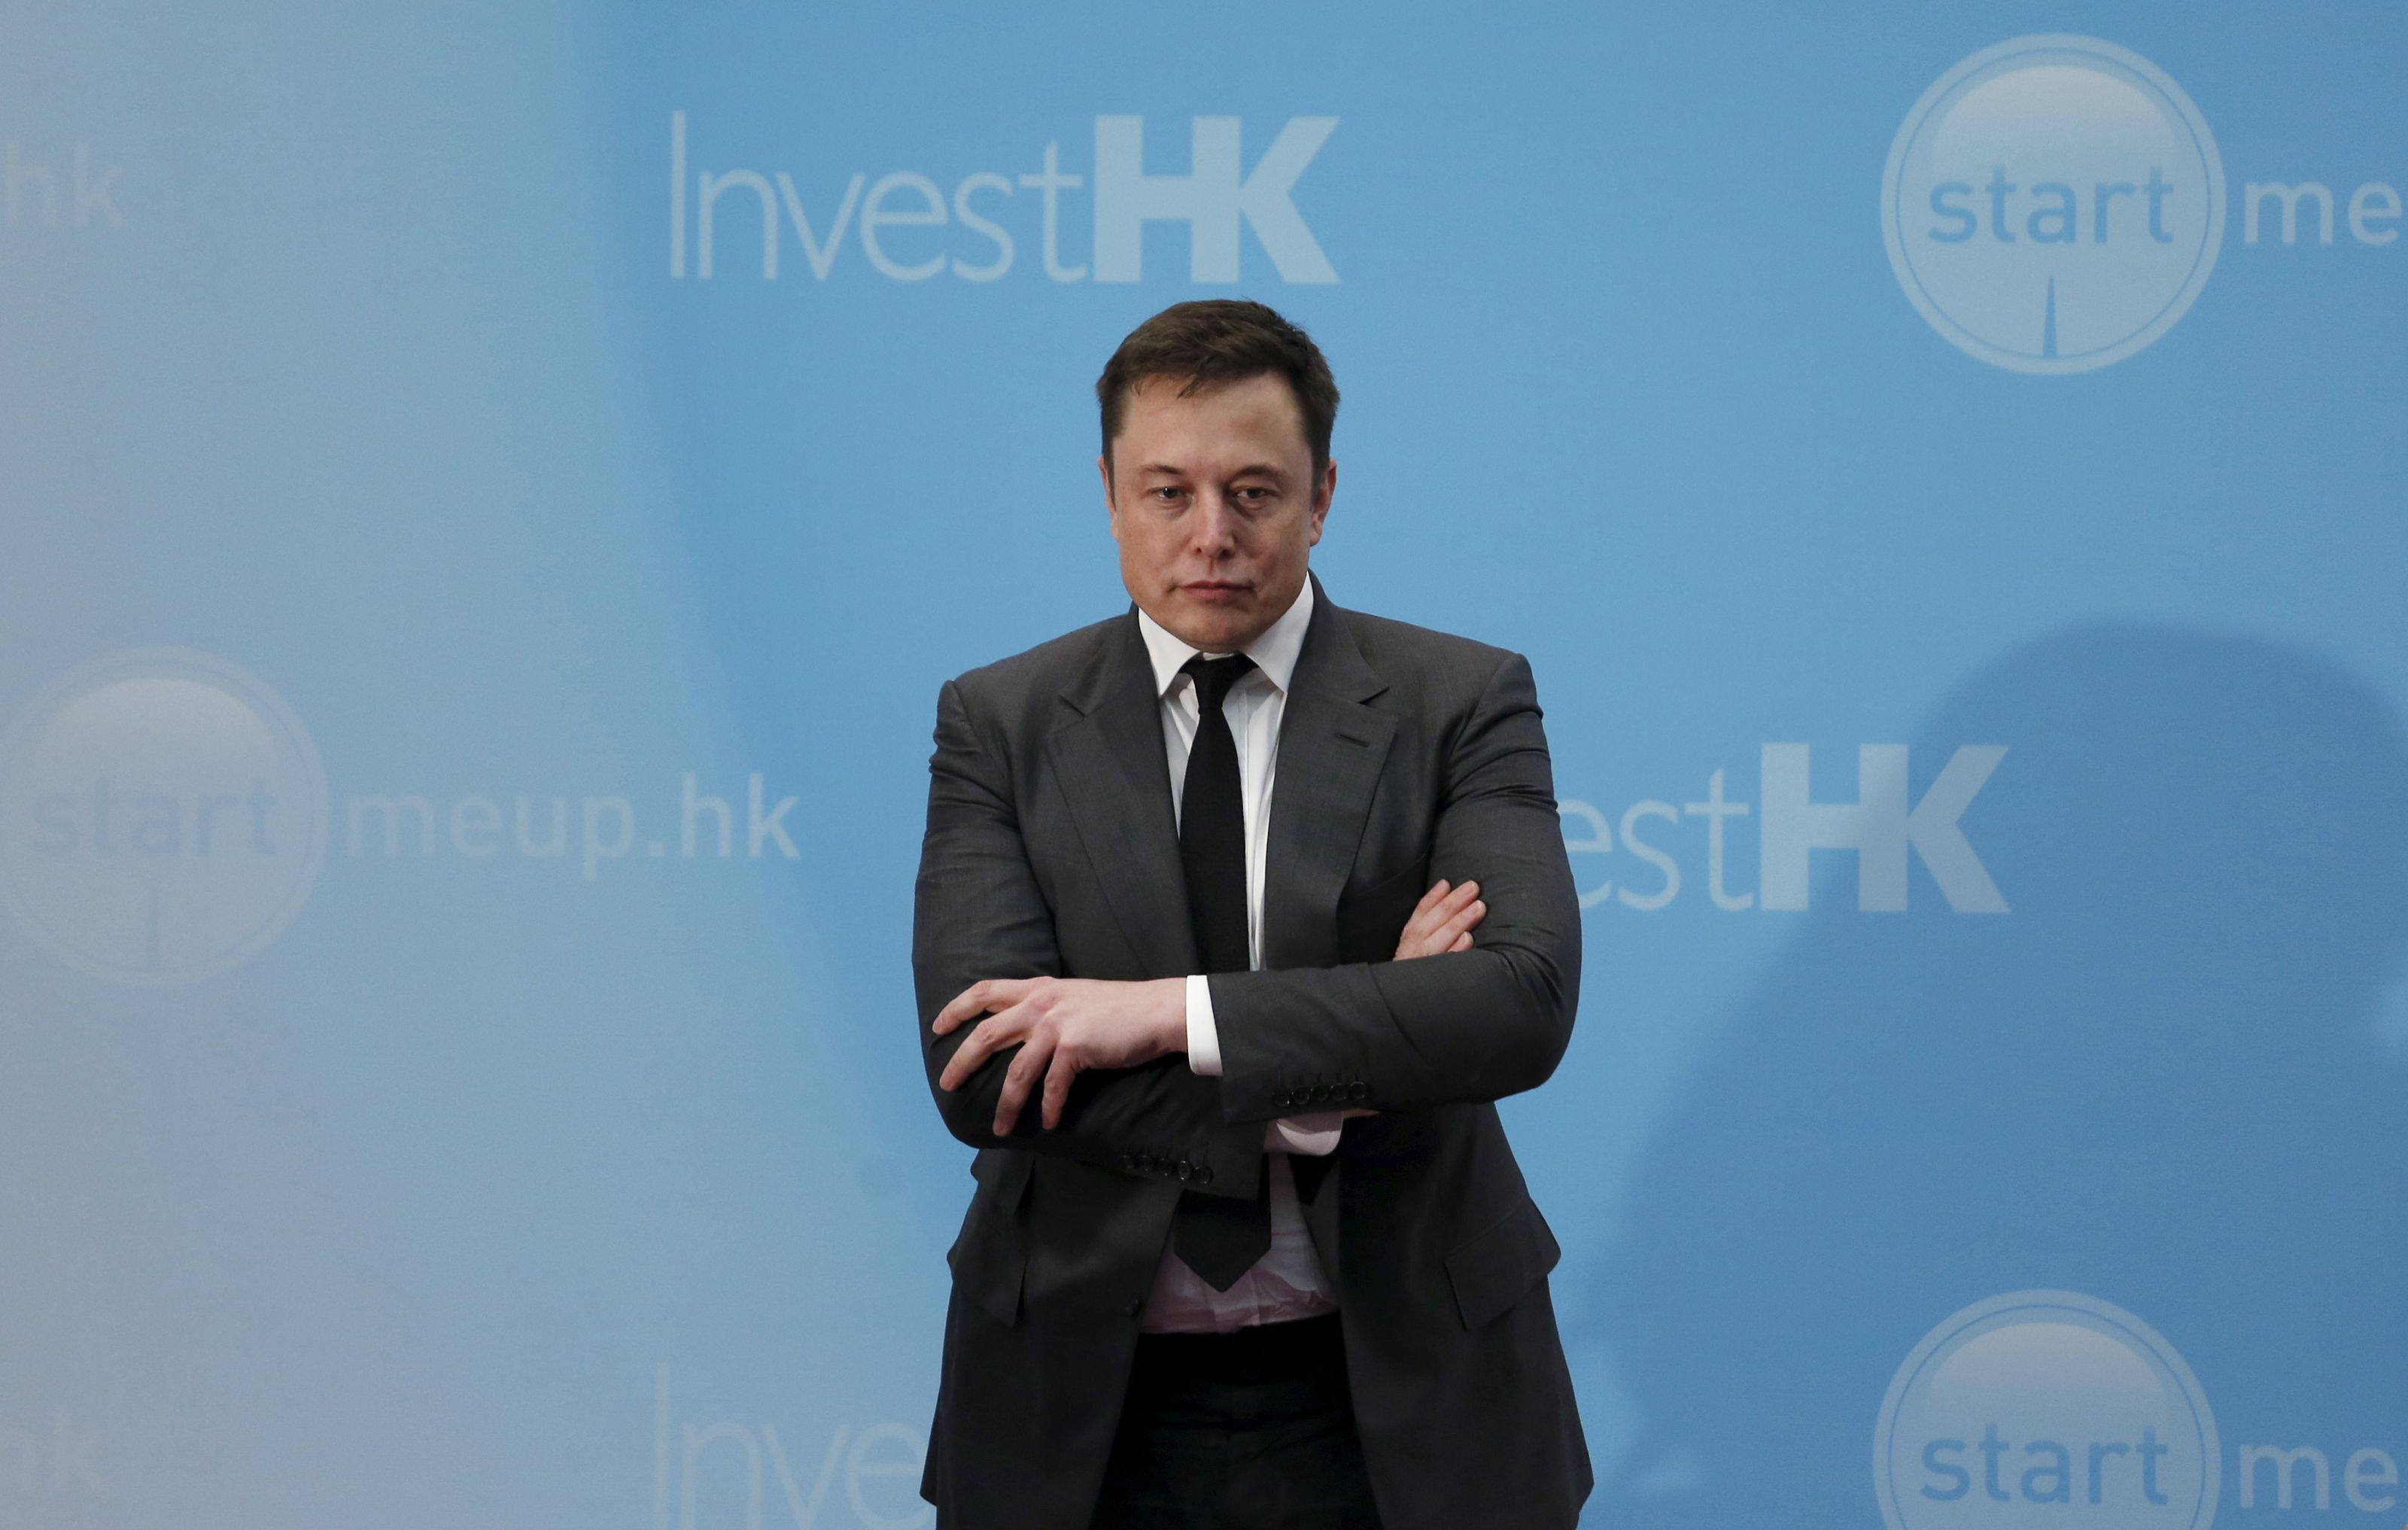 Tesla Chief Executive Elon Musk stands on the podium as he attends a forum on startups in Hong Kong, China January 26, 2016. REUTERS/Bobby Yip/File Photo - RTX2J8MS